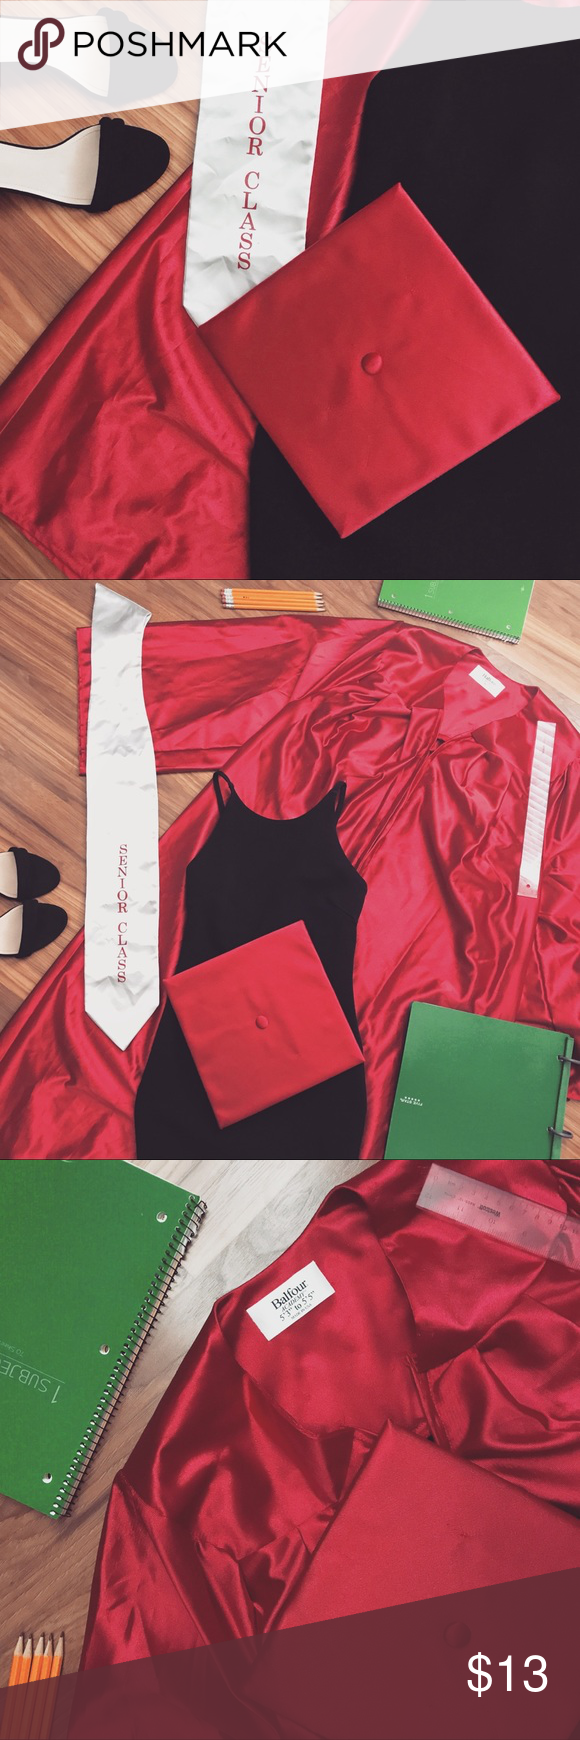 Balfour Red Cap and gown (Highschool) | Flat lay, Cap and Gowns